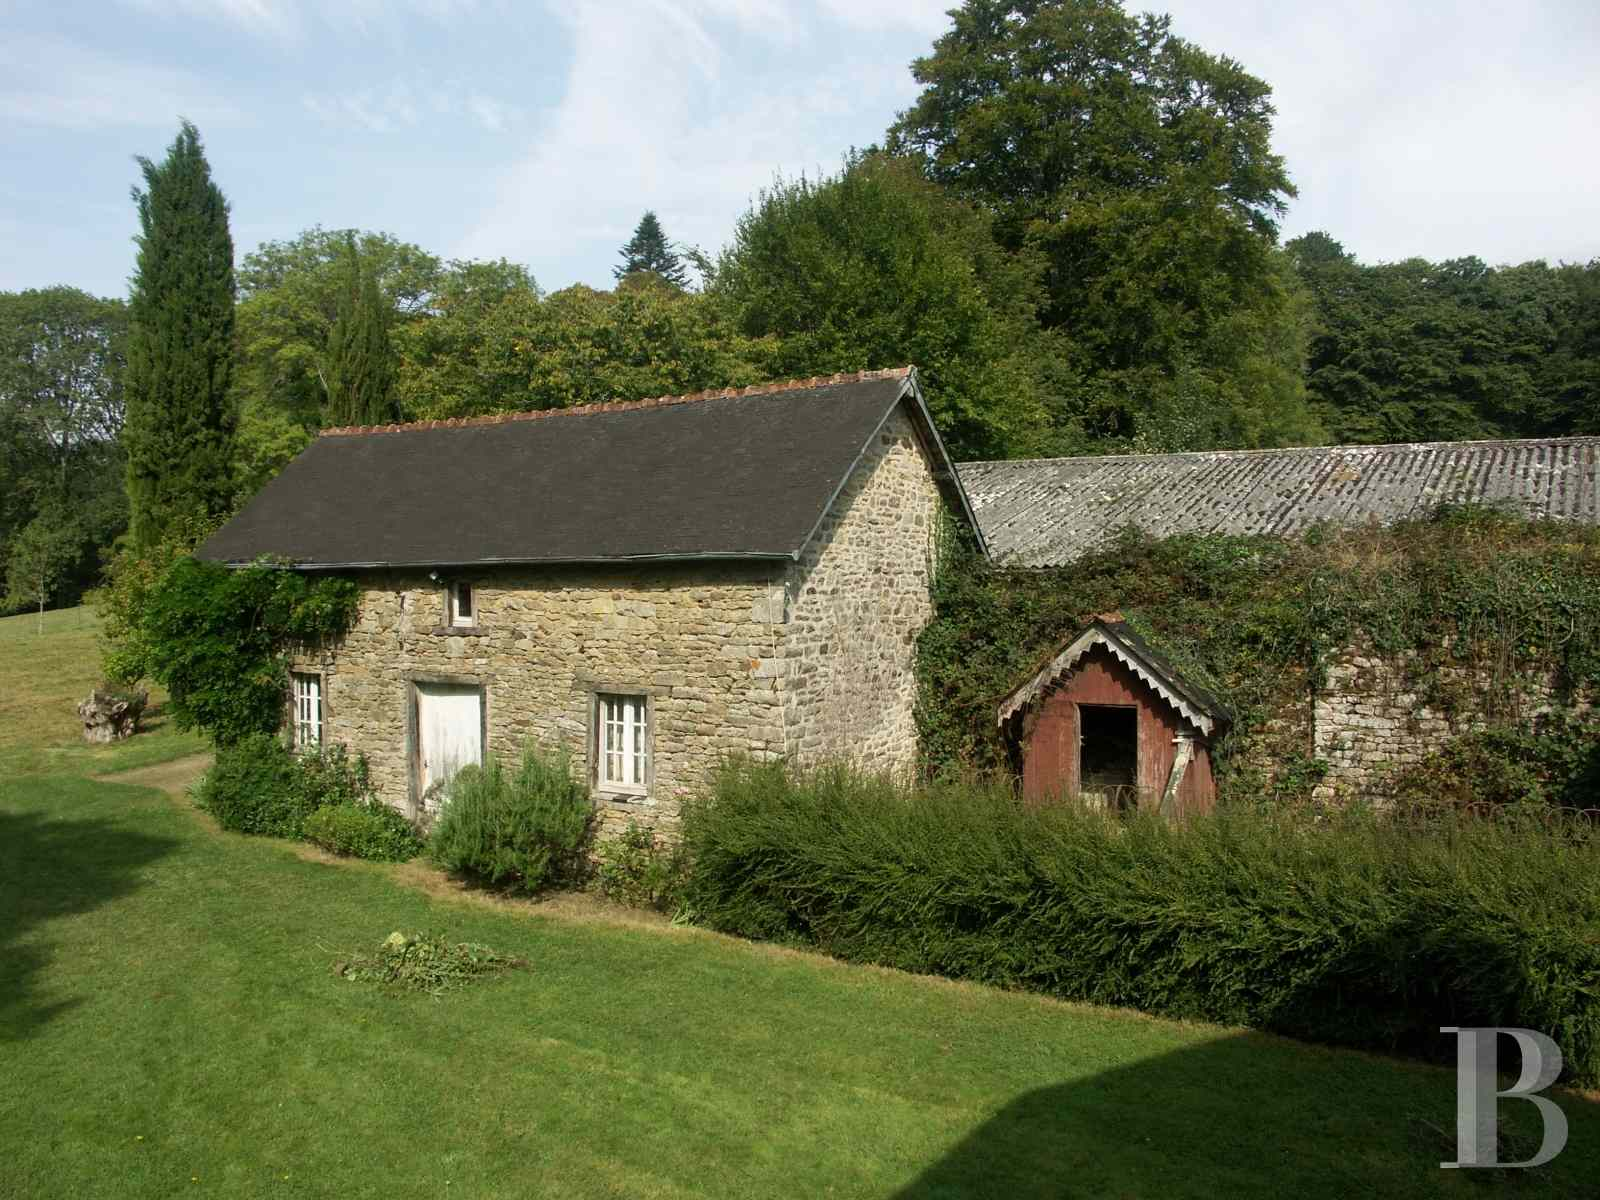 property for sale France brittany morbihan abbey - 5 zoom